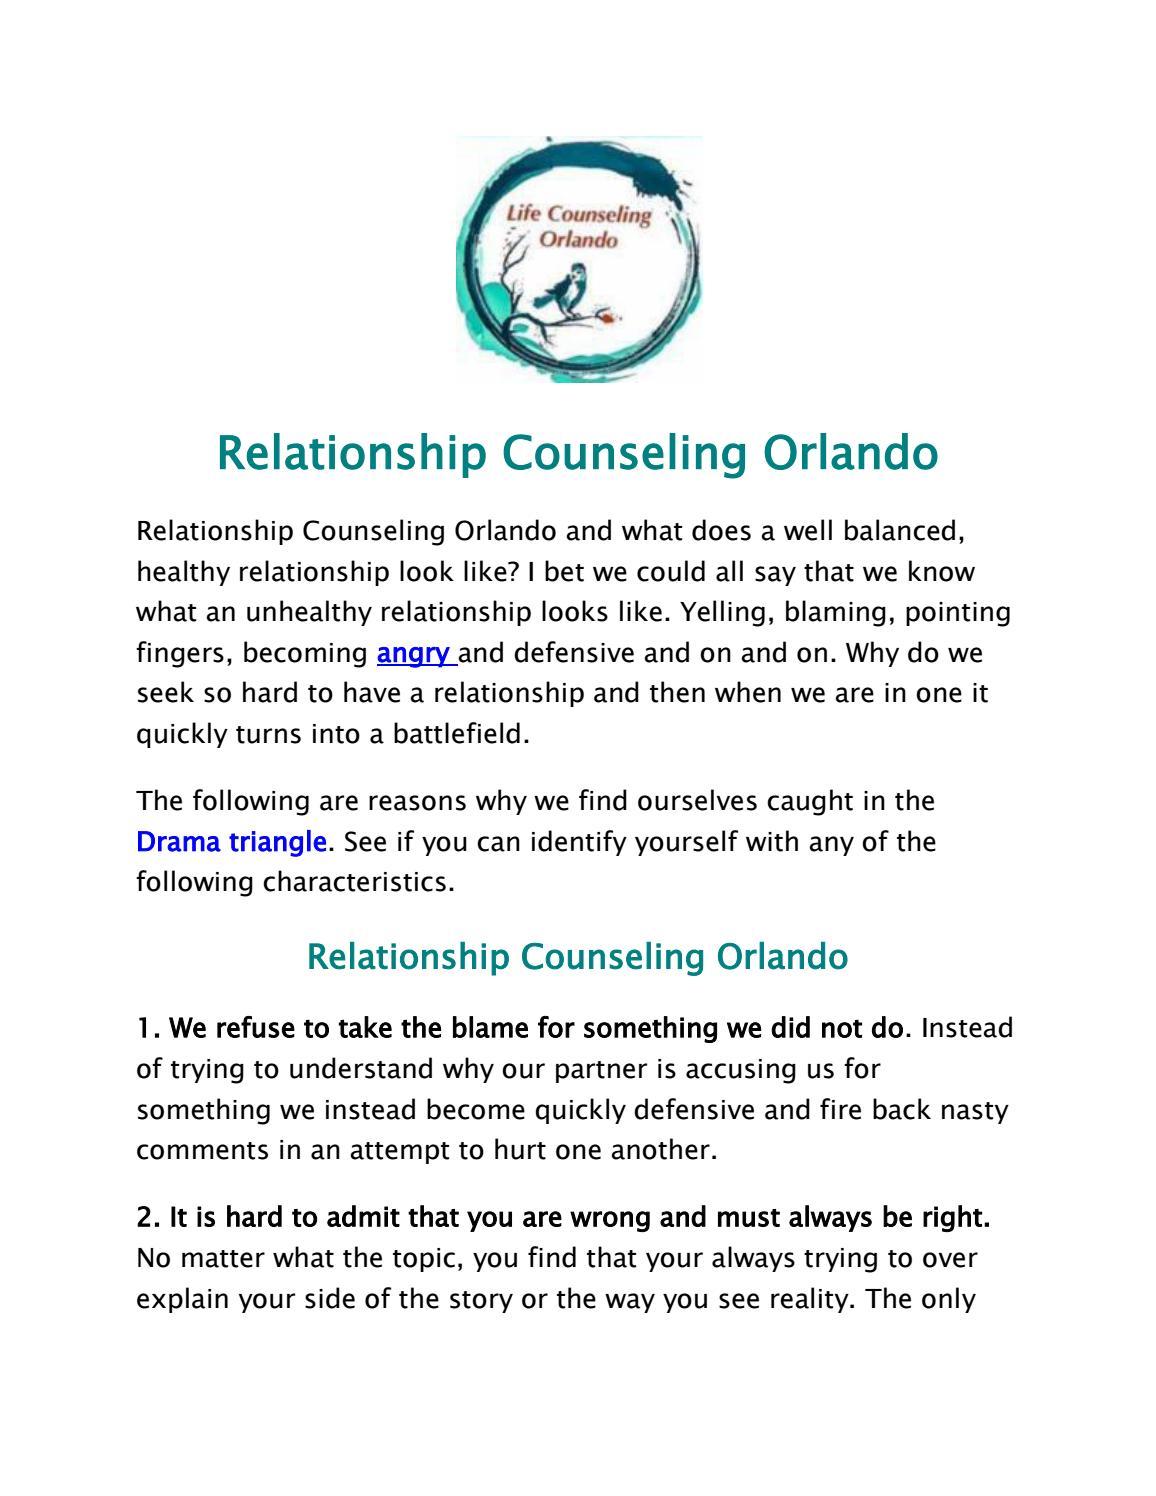 Relationship counseling orlando by sally high issuu solutioingenieria Image collections